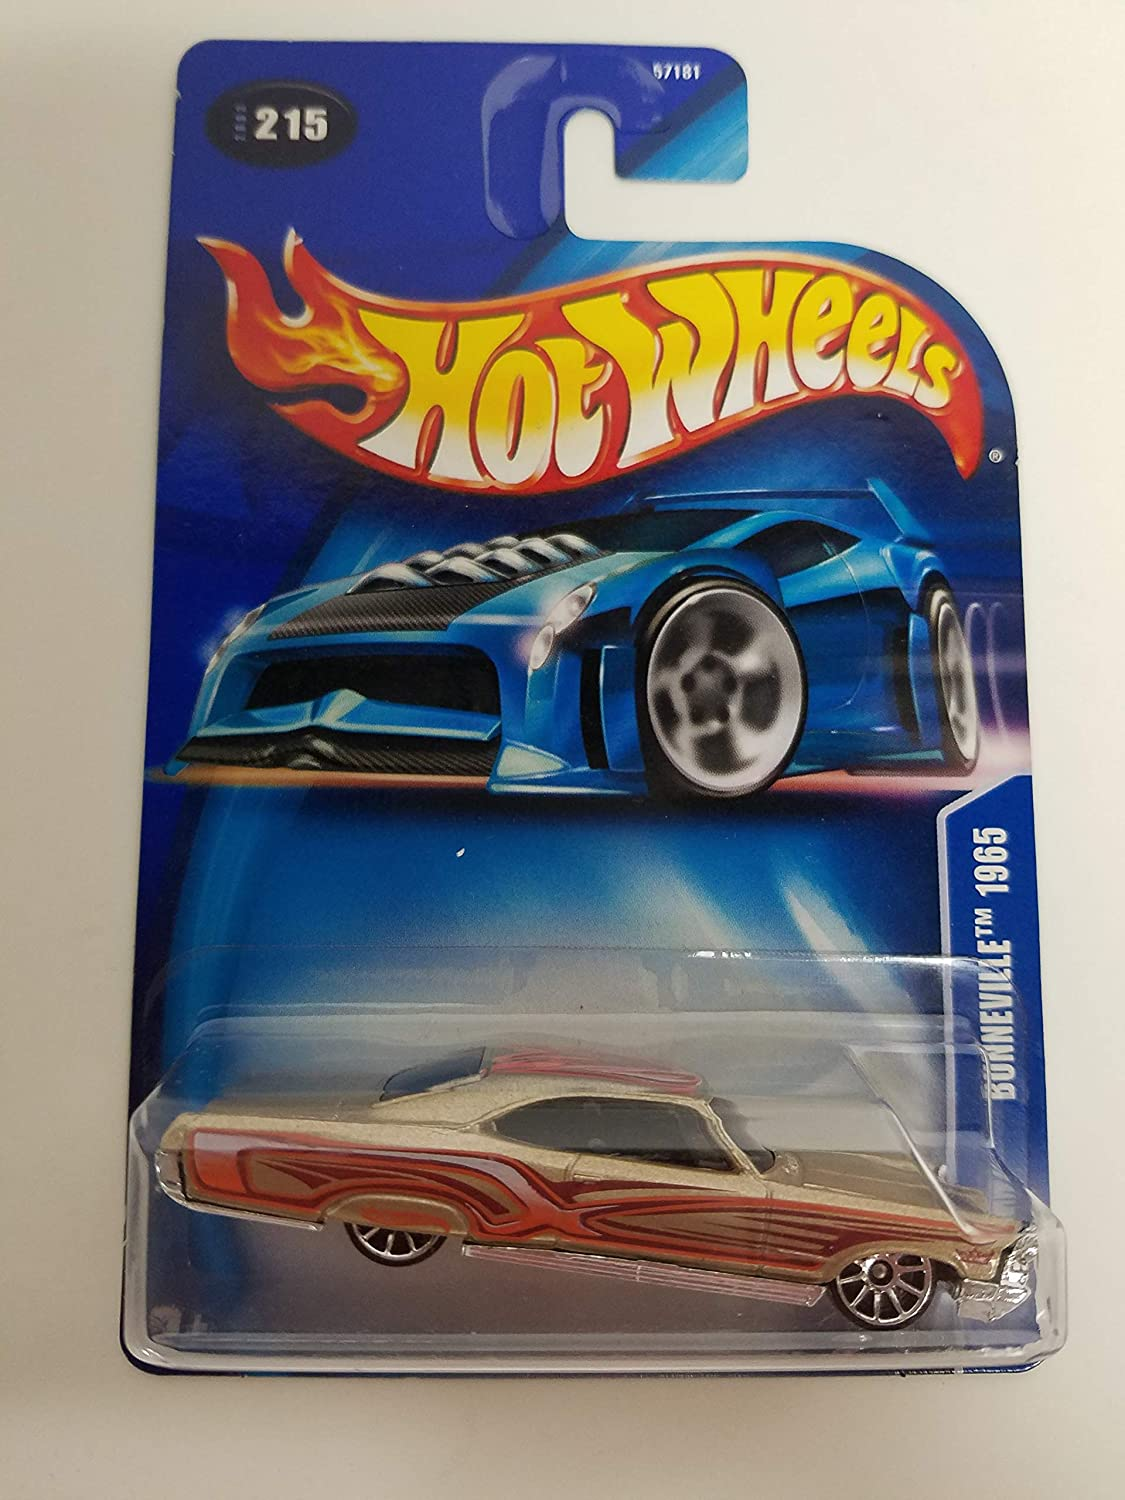 Bonneville 1965 2003 Hot Wheels diecast car No. 215